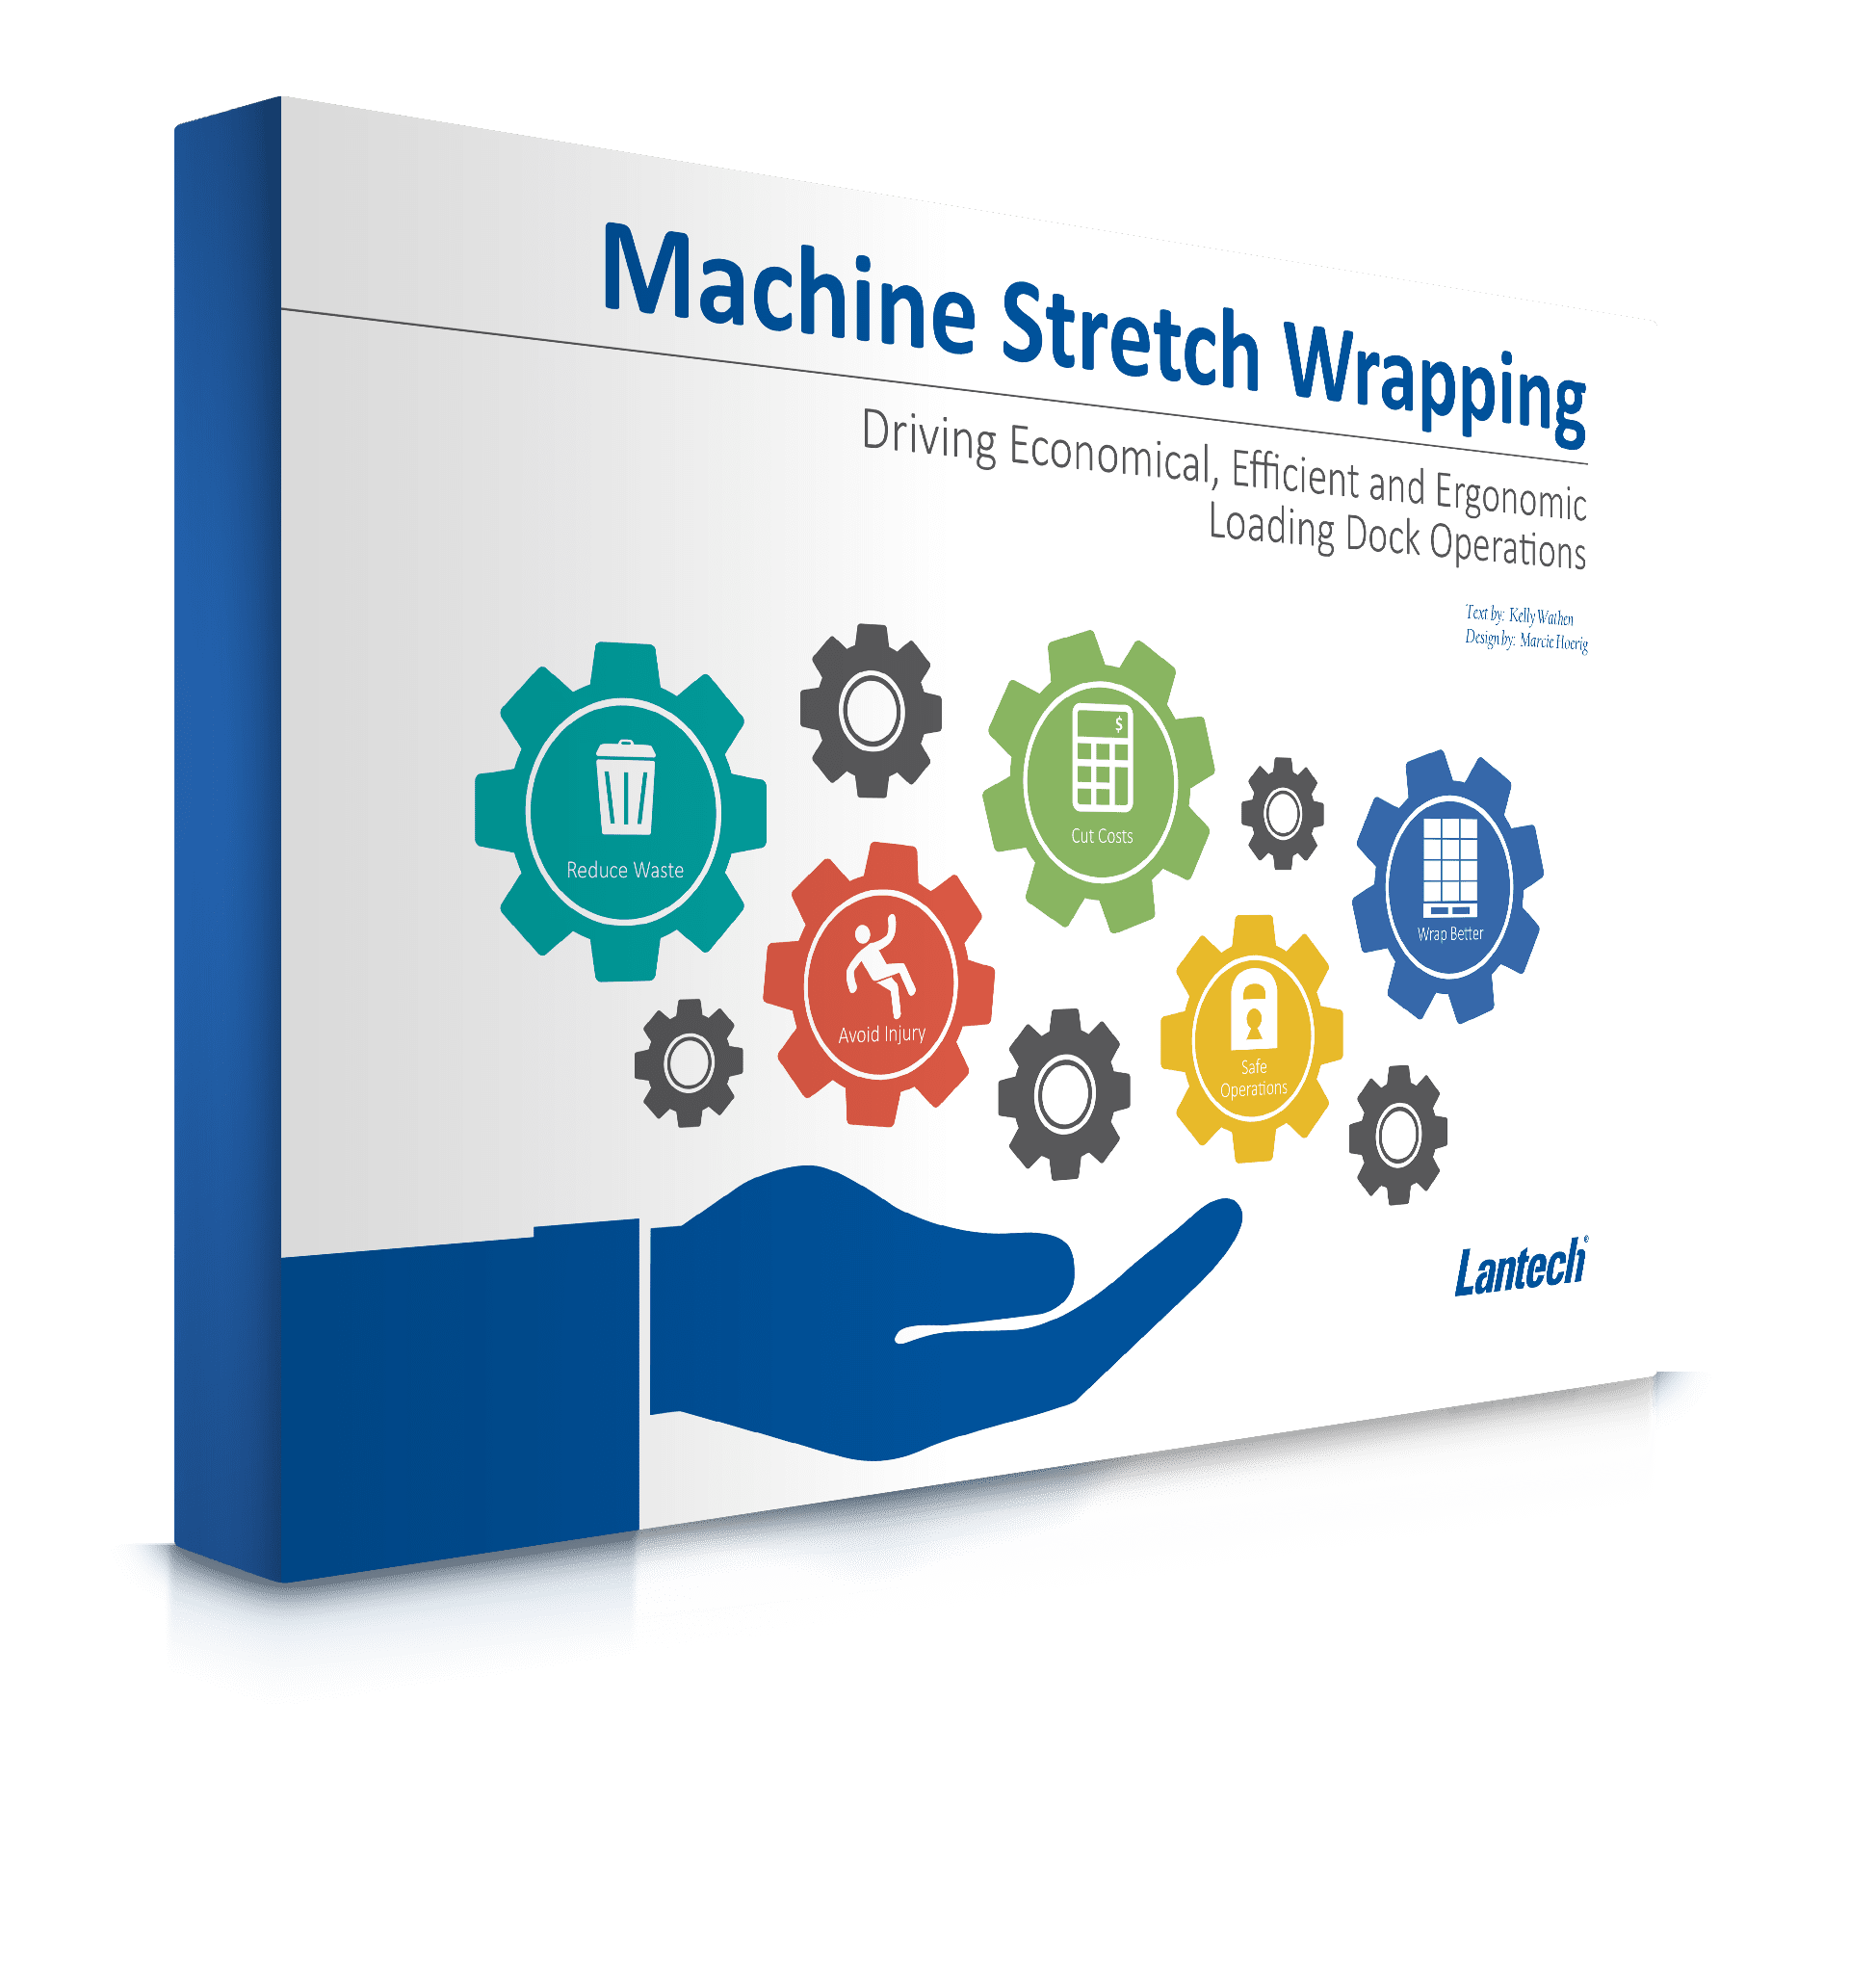 Lantech_MOFU_Machine_Stretch_Wrapping_eBook_cover_image.png